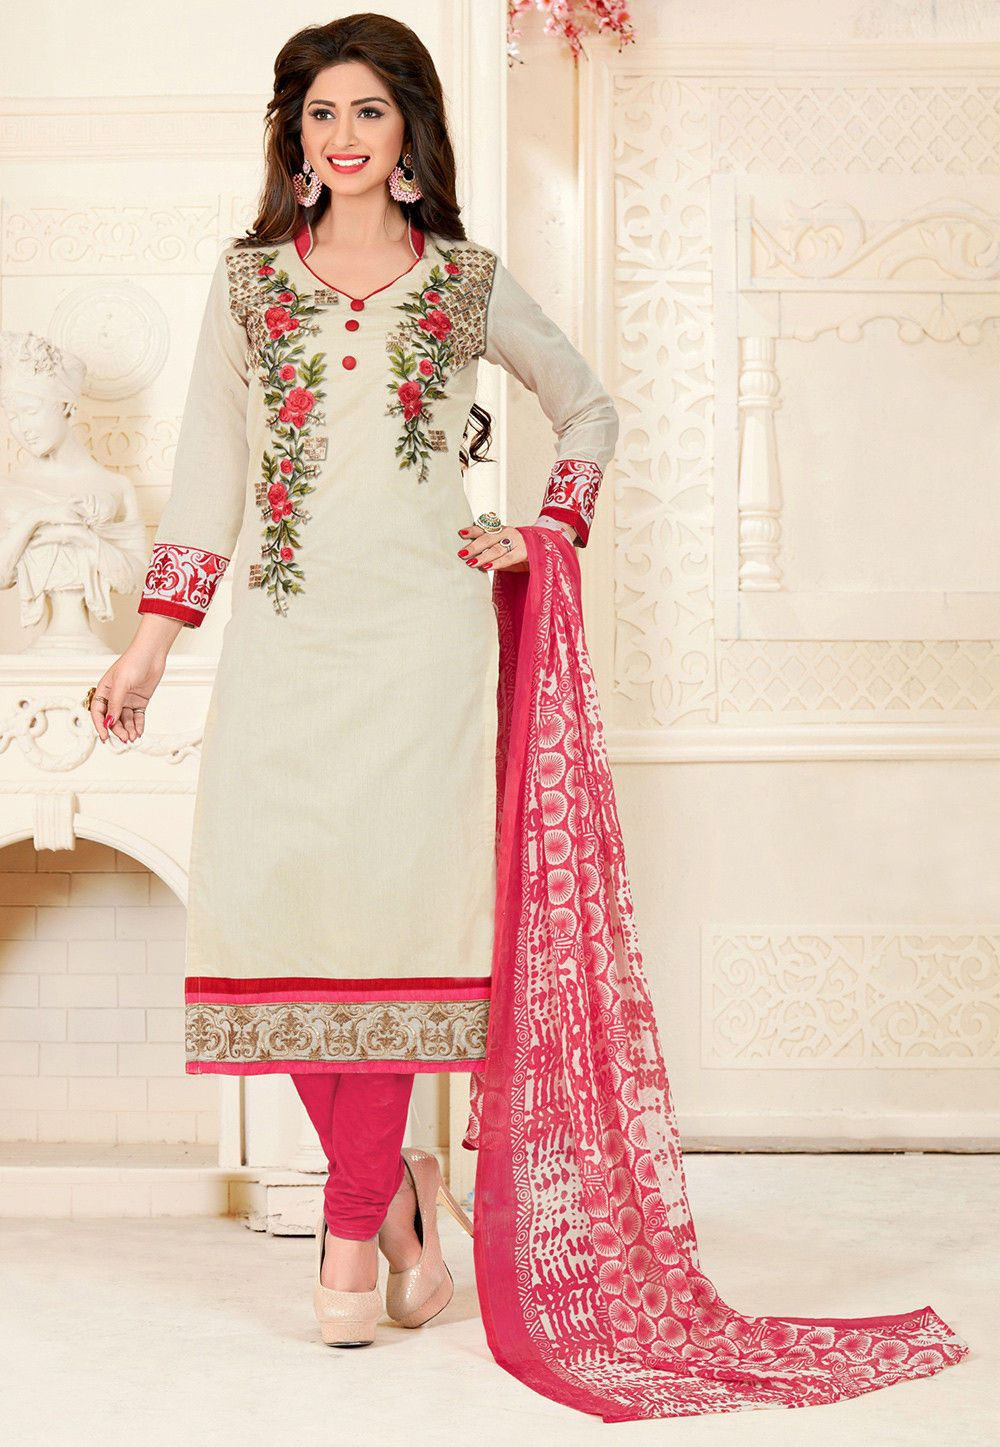 c558641acd Semi-stitched Art Chanderi Silk Straight Kameez in Off White This Chinese  Collar Neck and Quarter Sleeve attire is Prettified with Abstract Print,  Resham, ...